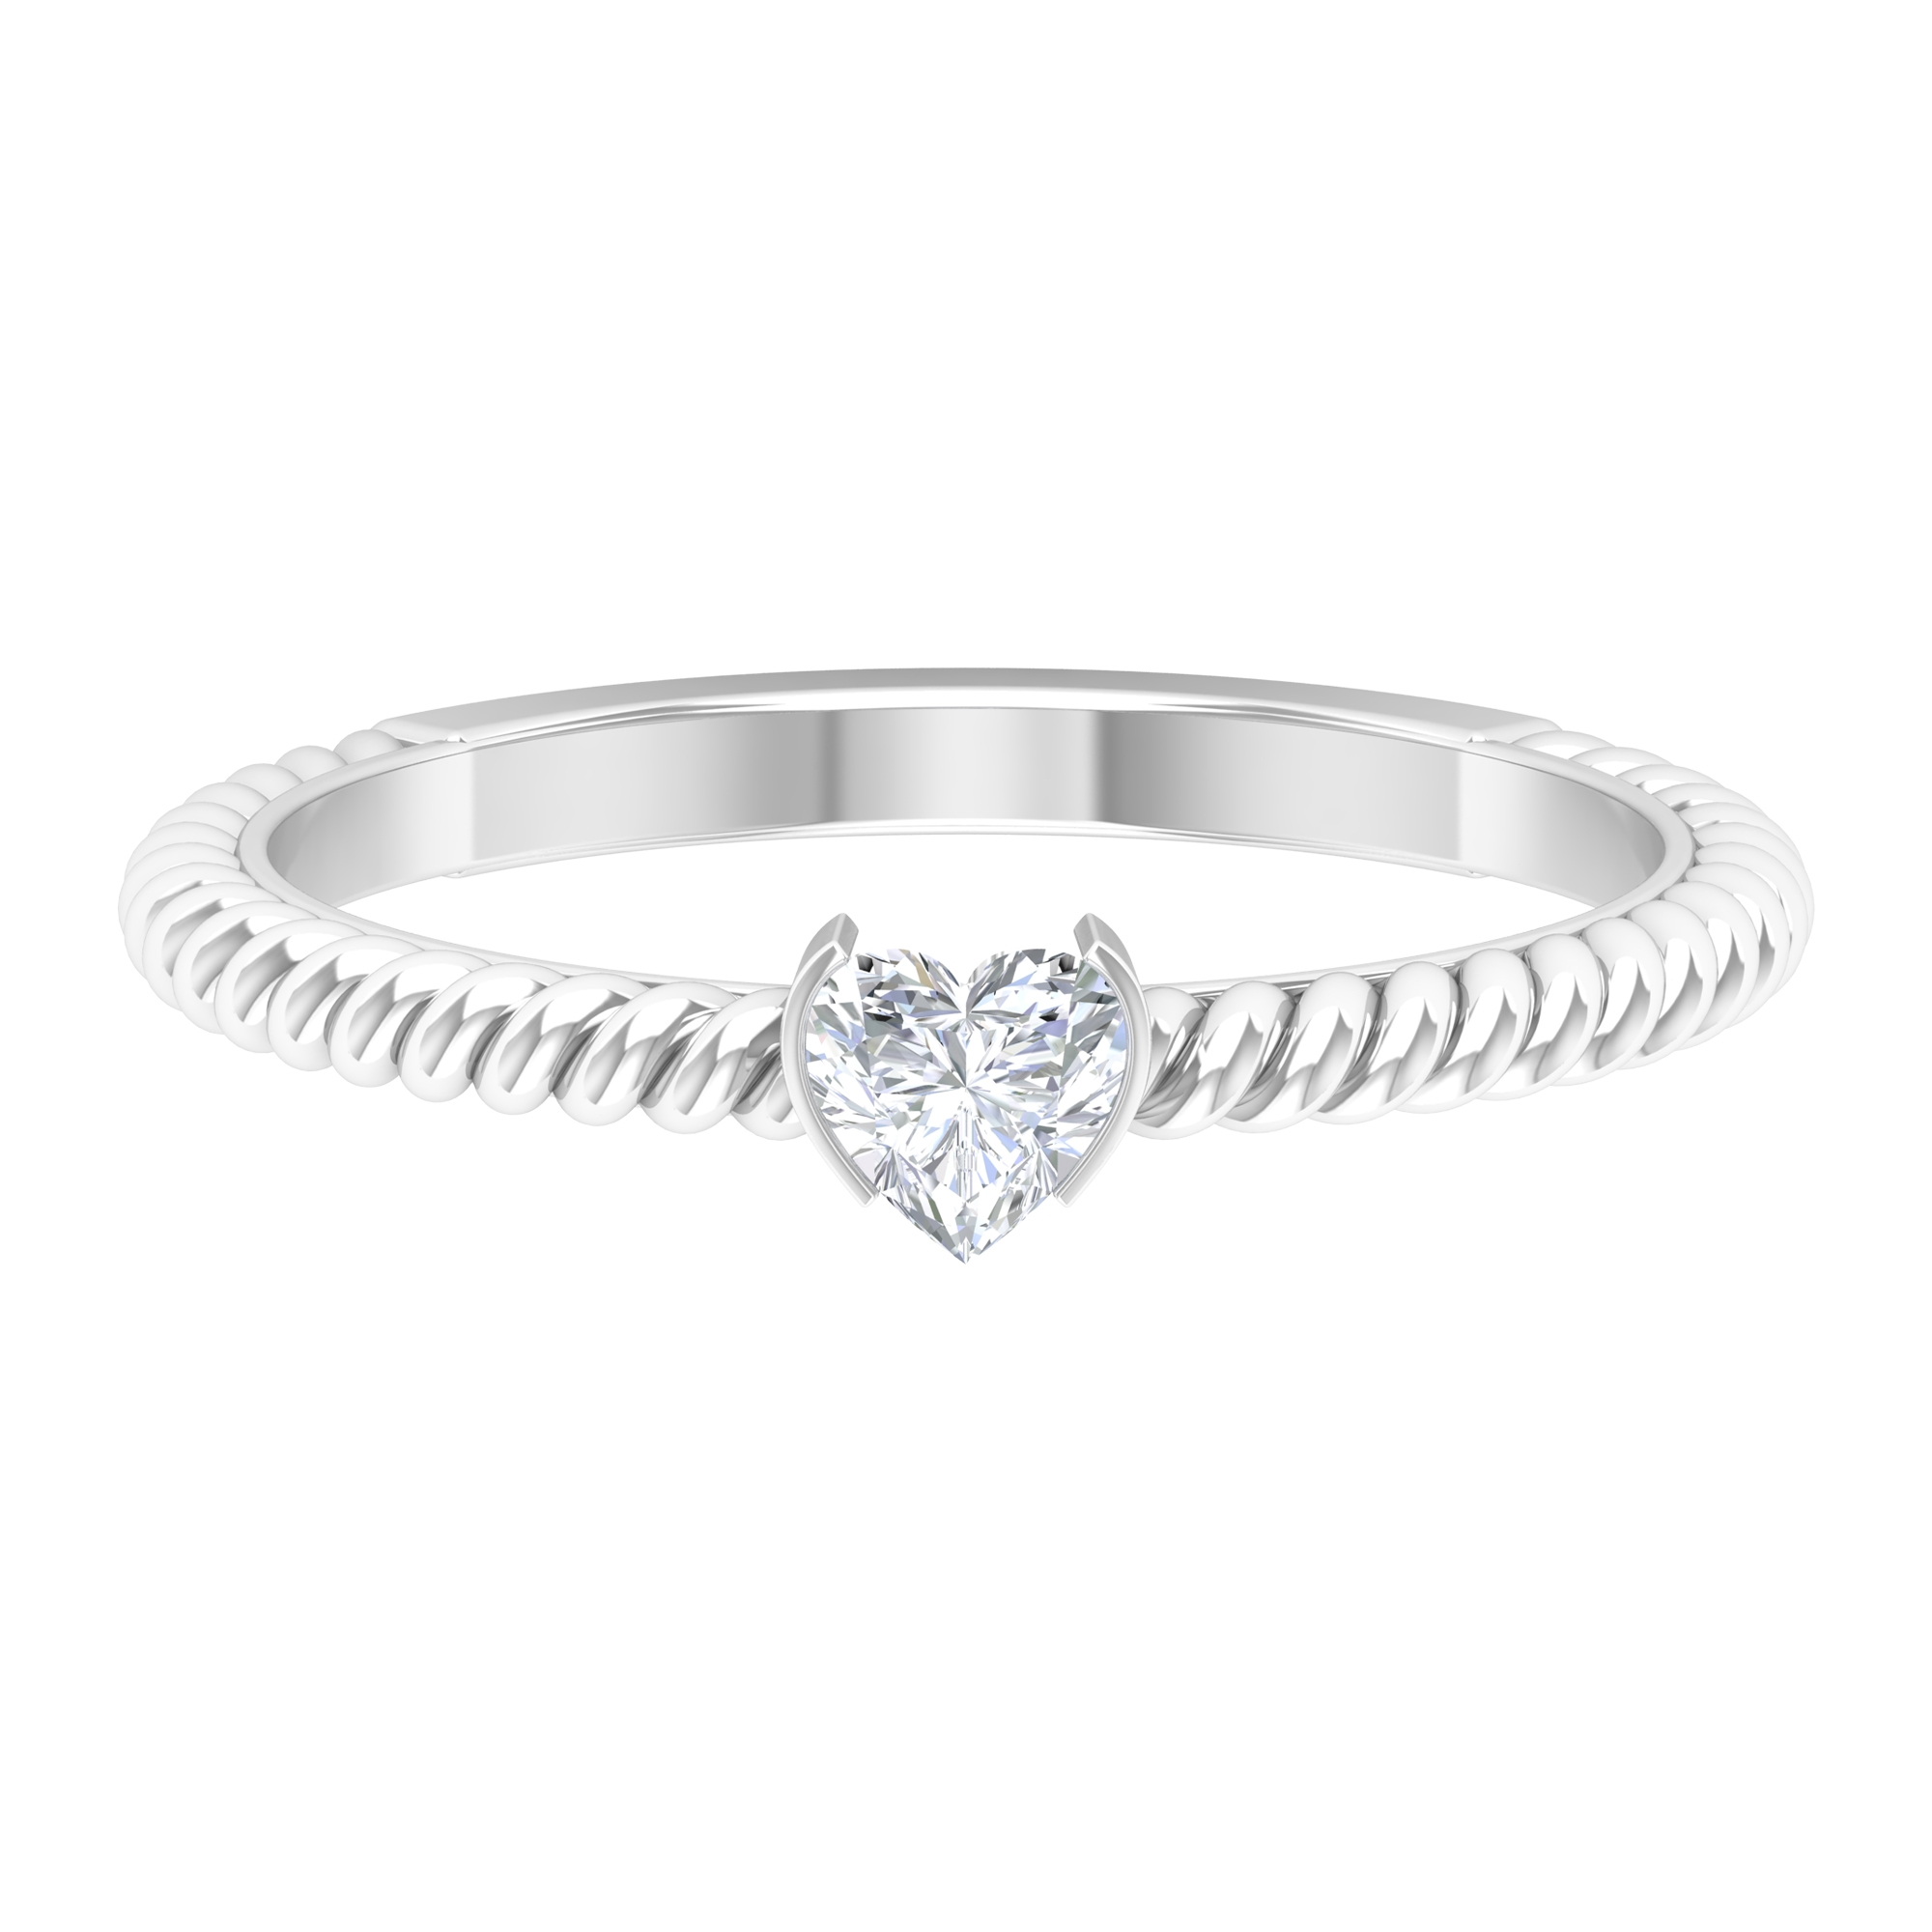 Half Bezel Set 4 MM Heart Diamond Solitaire Ring in Twisted Rope Shank